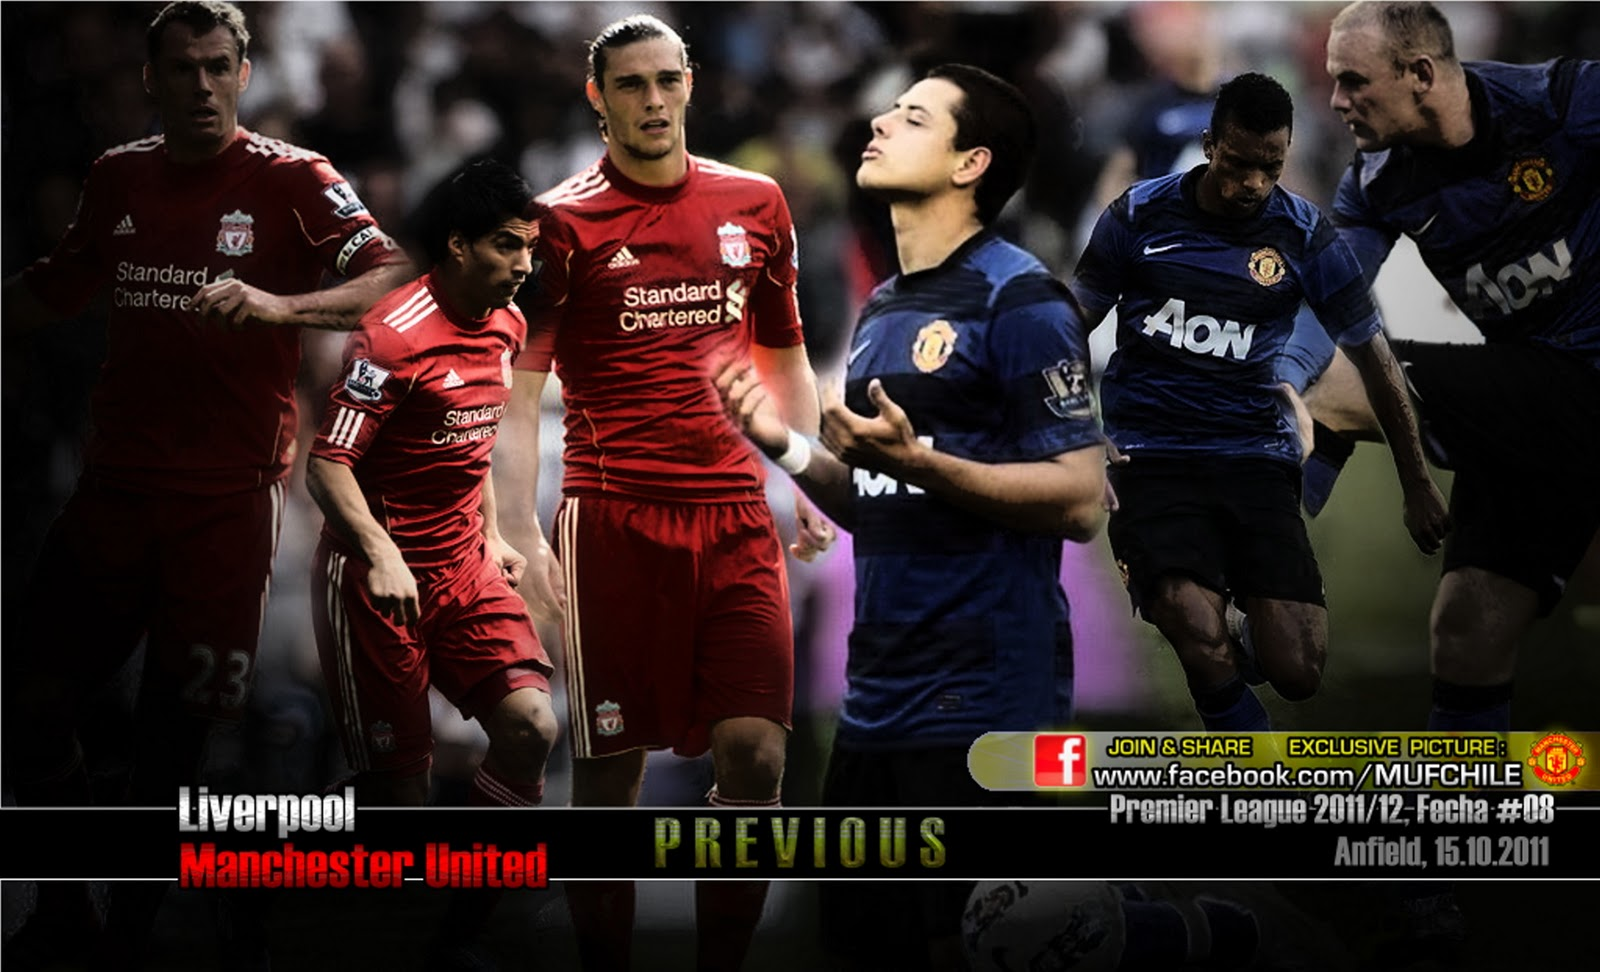 Glory Glory Manchester United PREVIEW LIVERPOOL Lwn